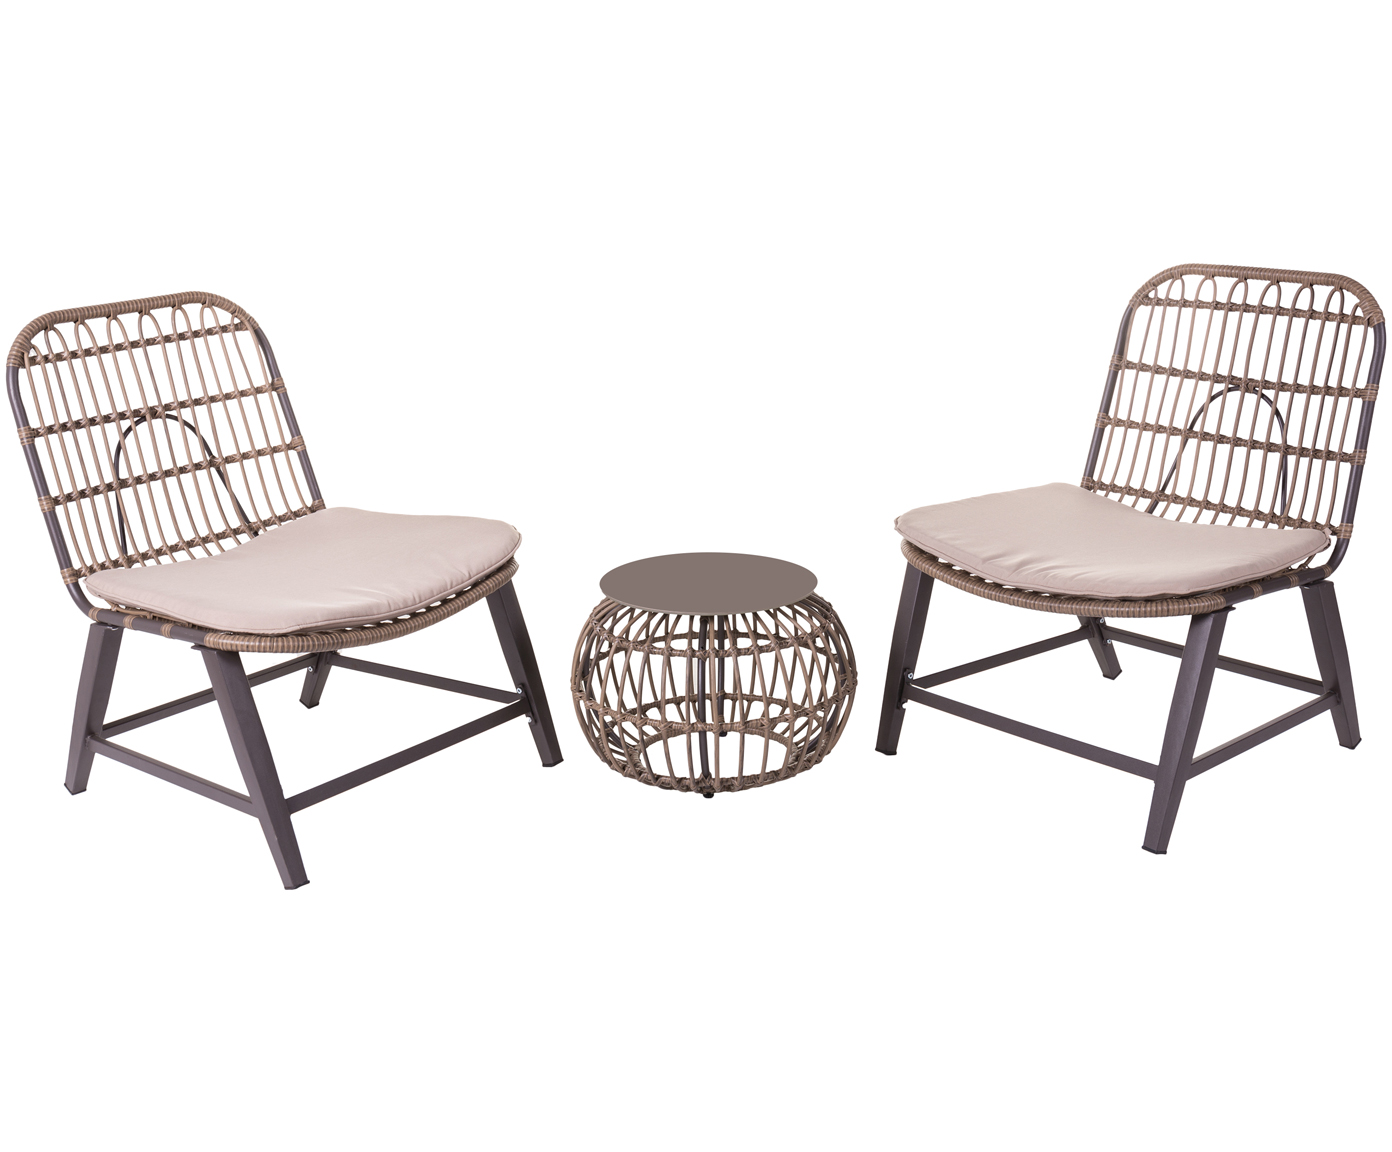 Outdoor-Lounge-Set Ariki, 3-tlg.